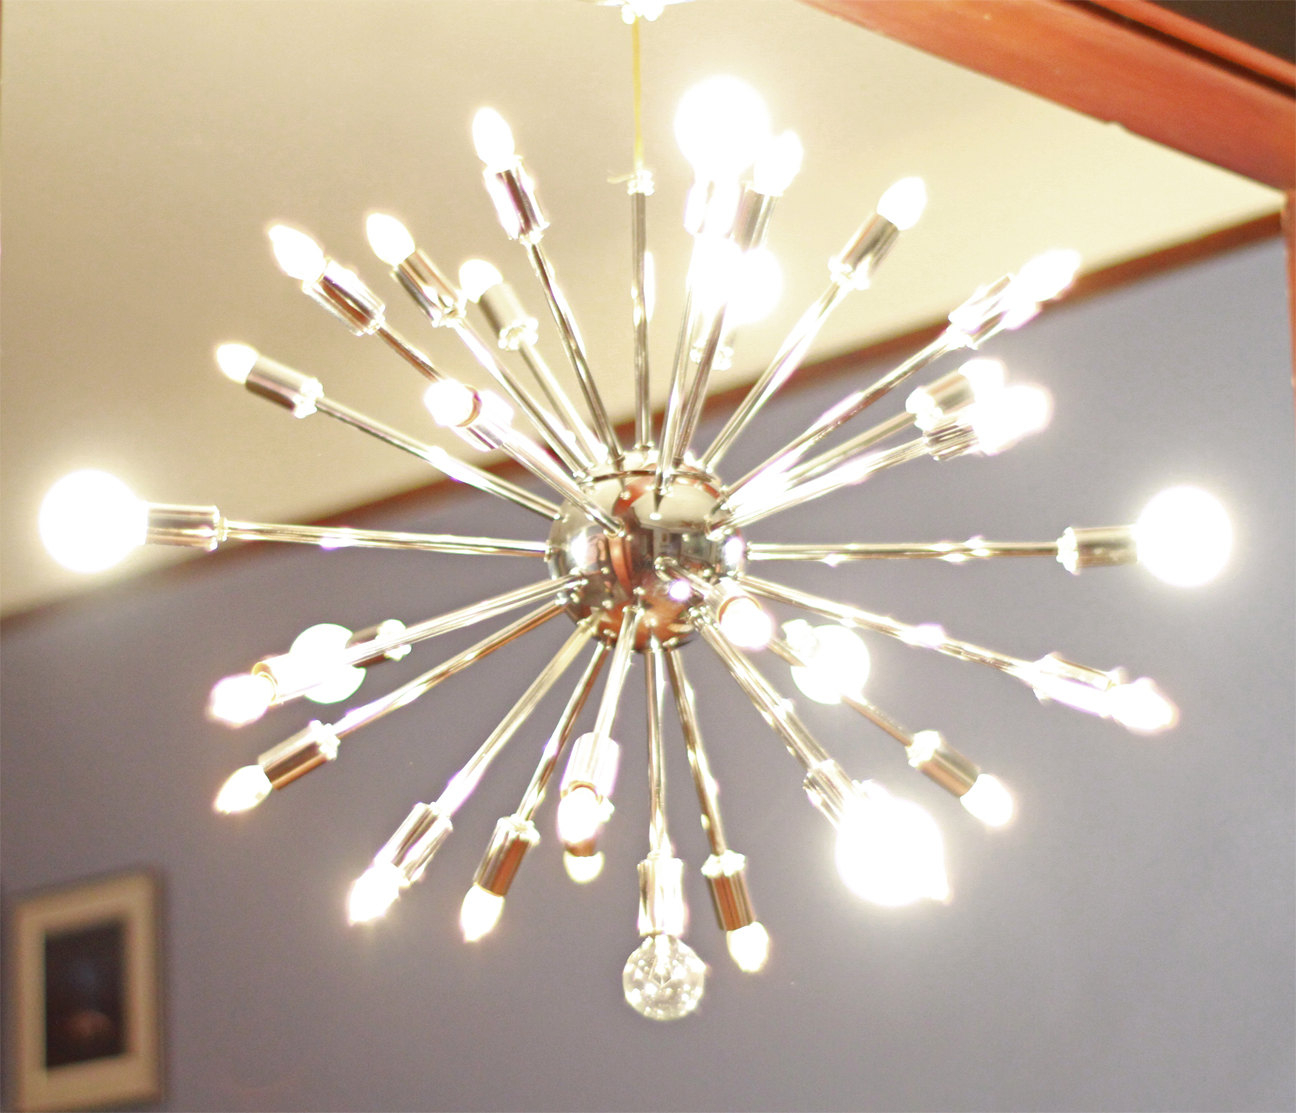 Mid Century Modern Lighting offers stylish whimsy ...